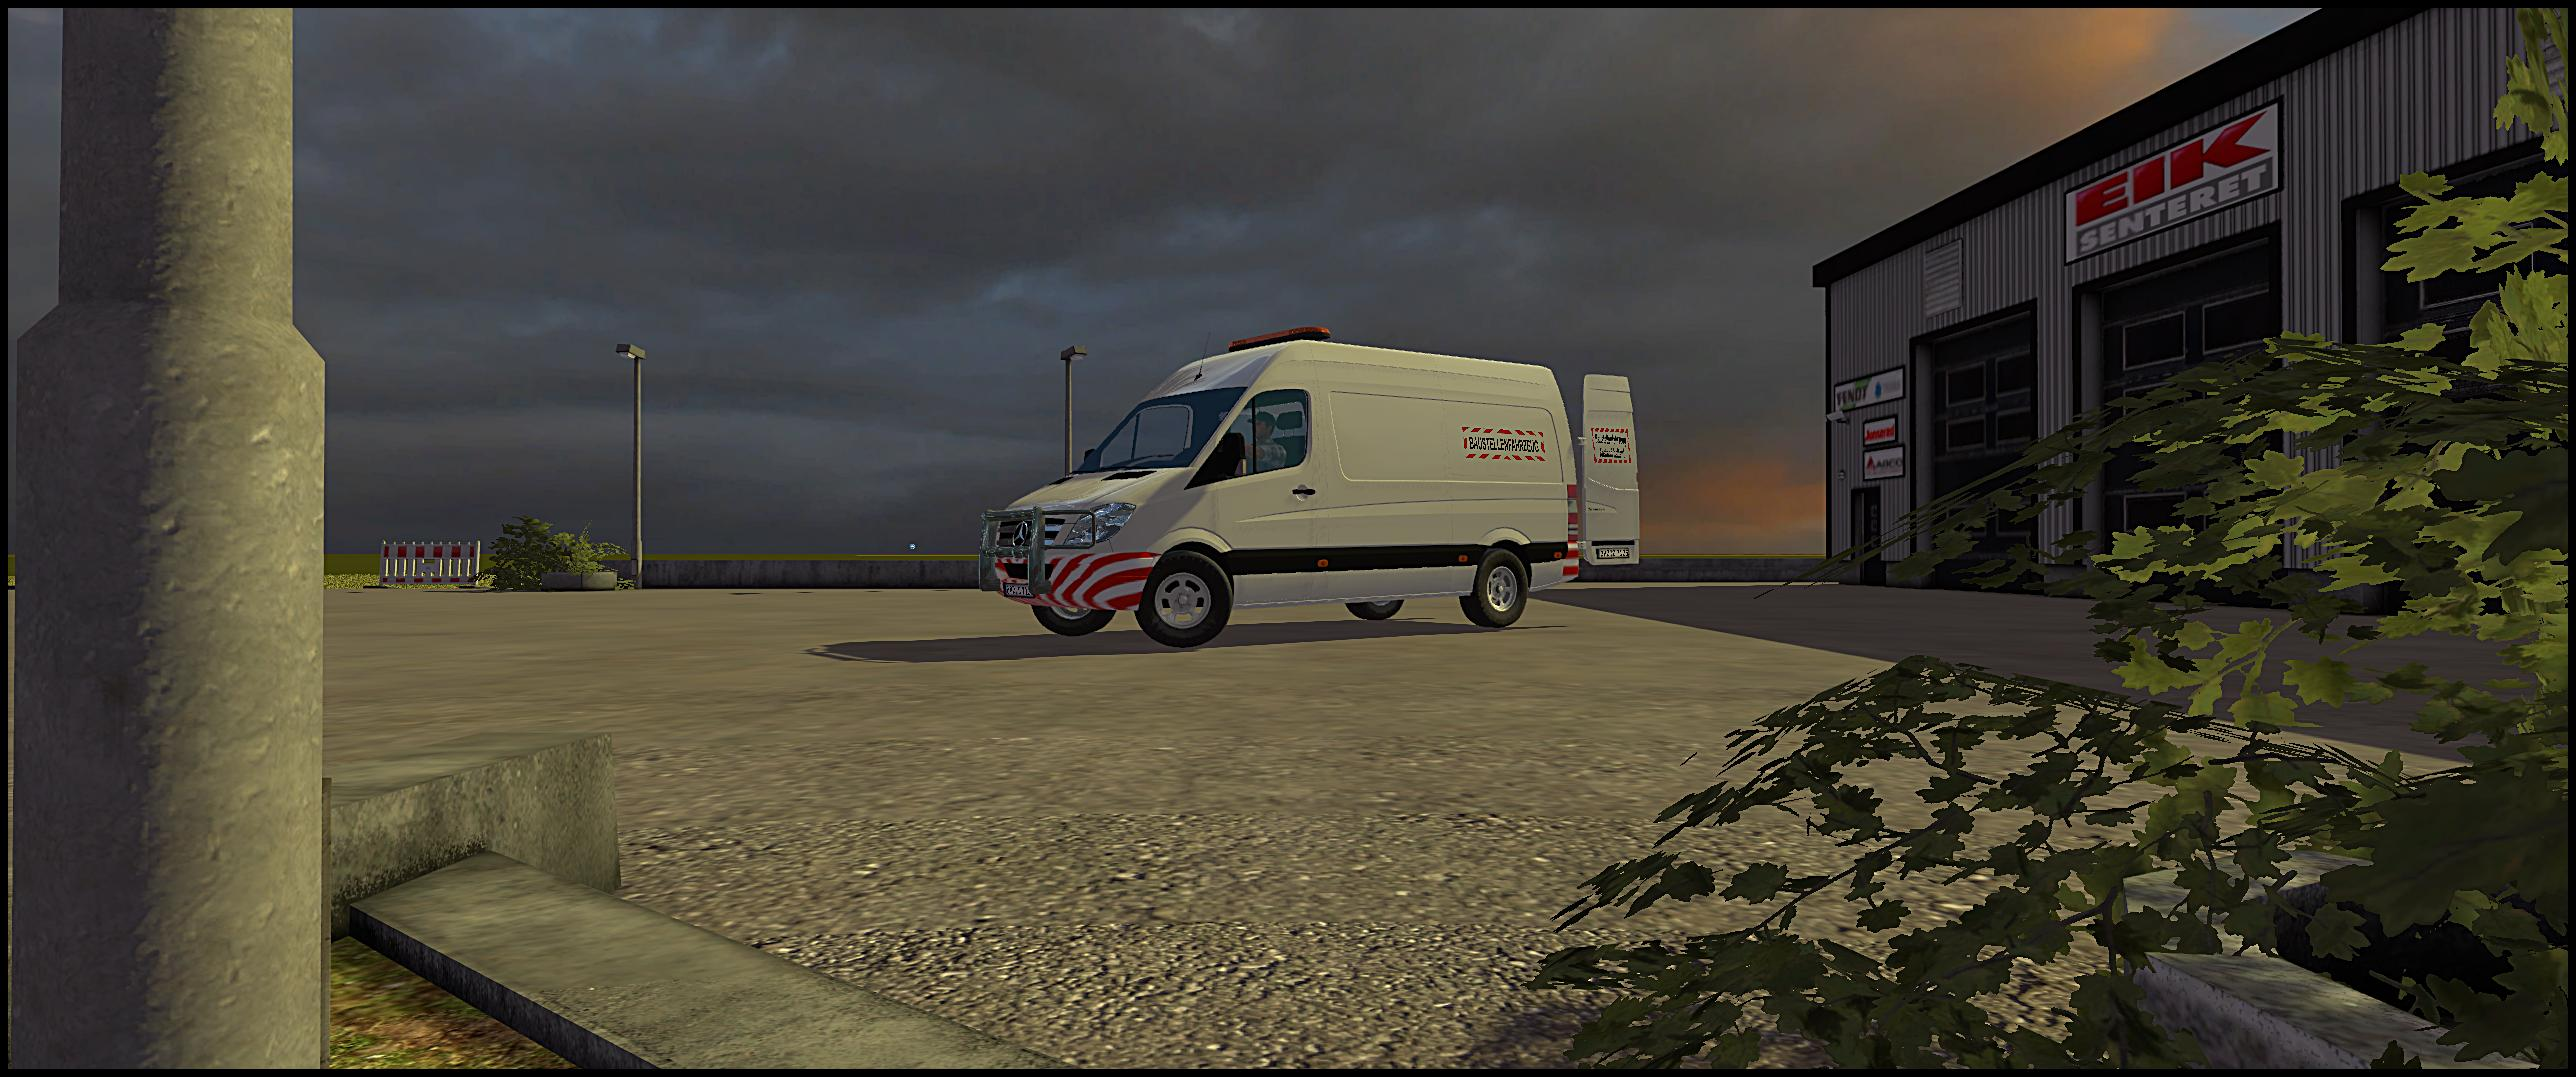 MB Sprinter 311 - 318 Transporter v1.0